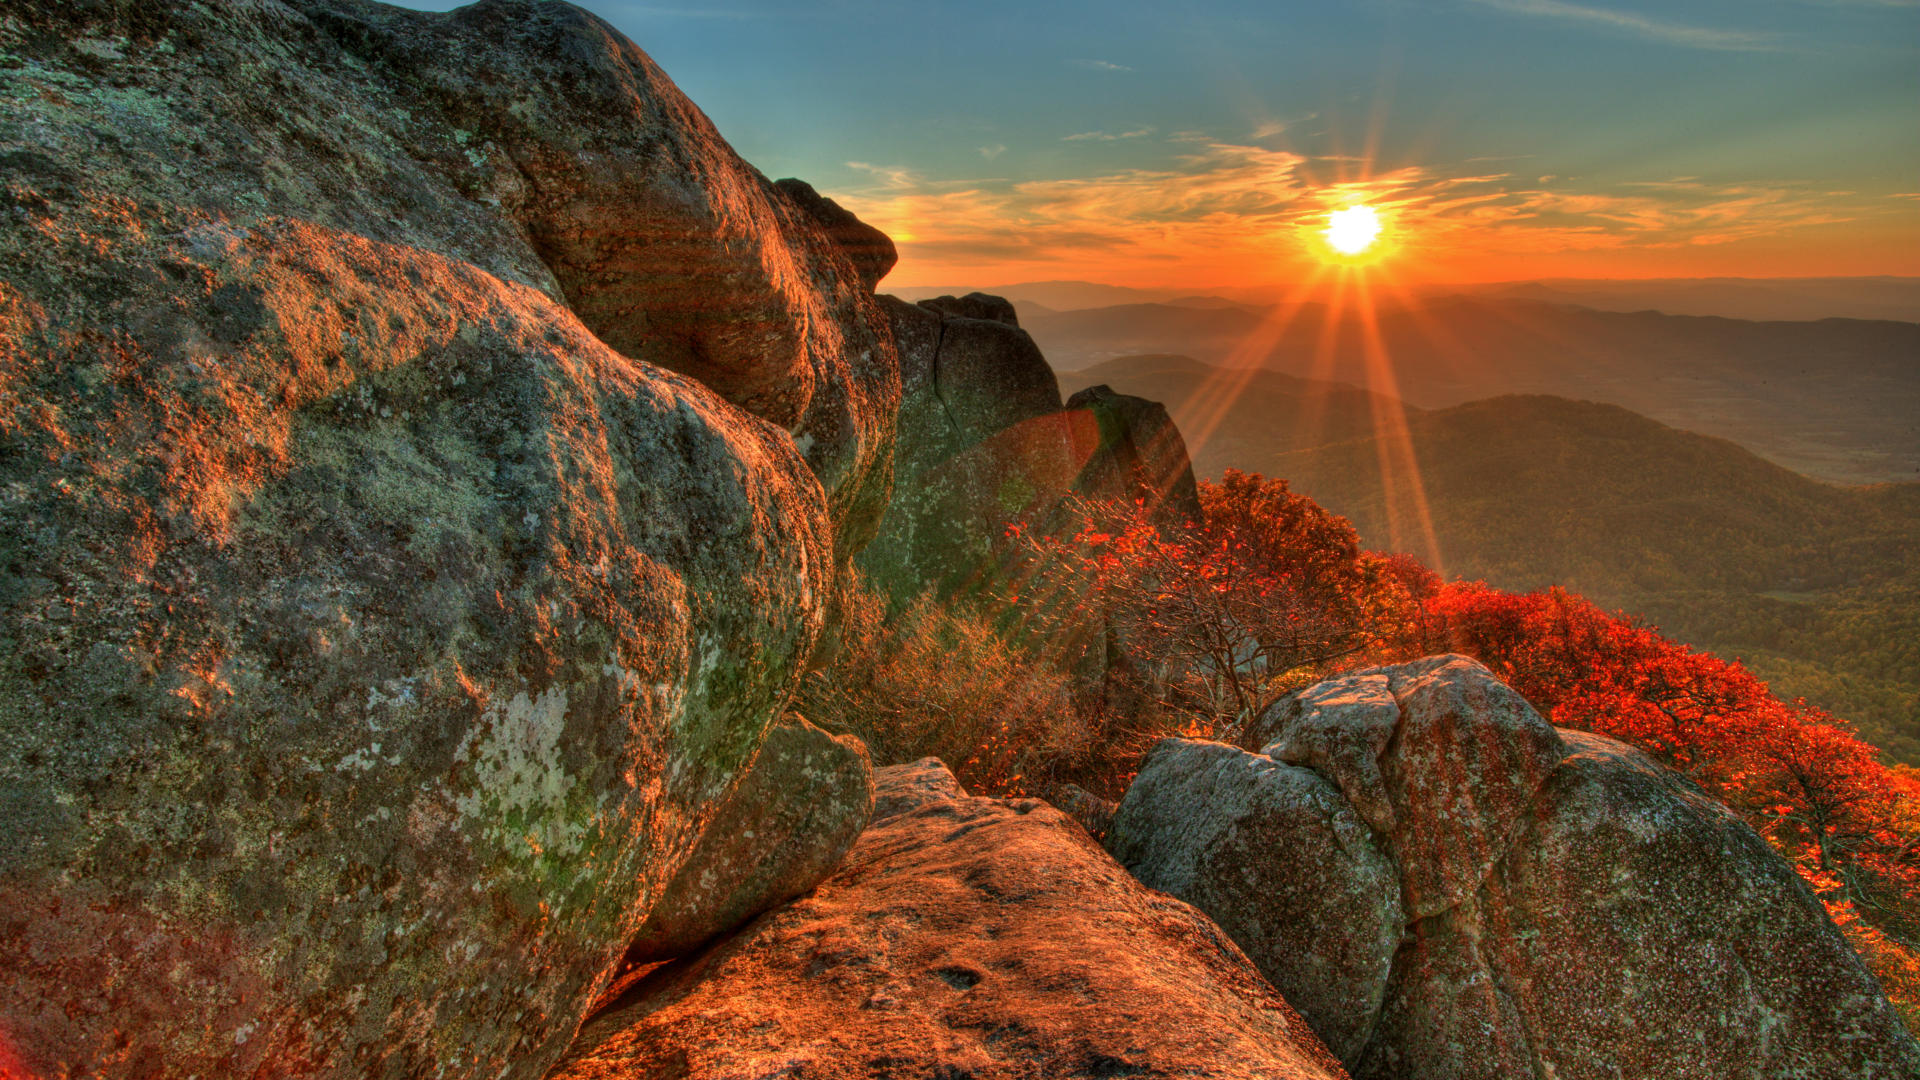 sunset desktop beautiful sunrise mountains wallpaper images picture